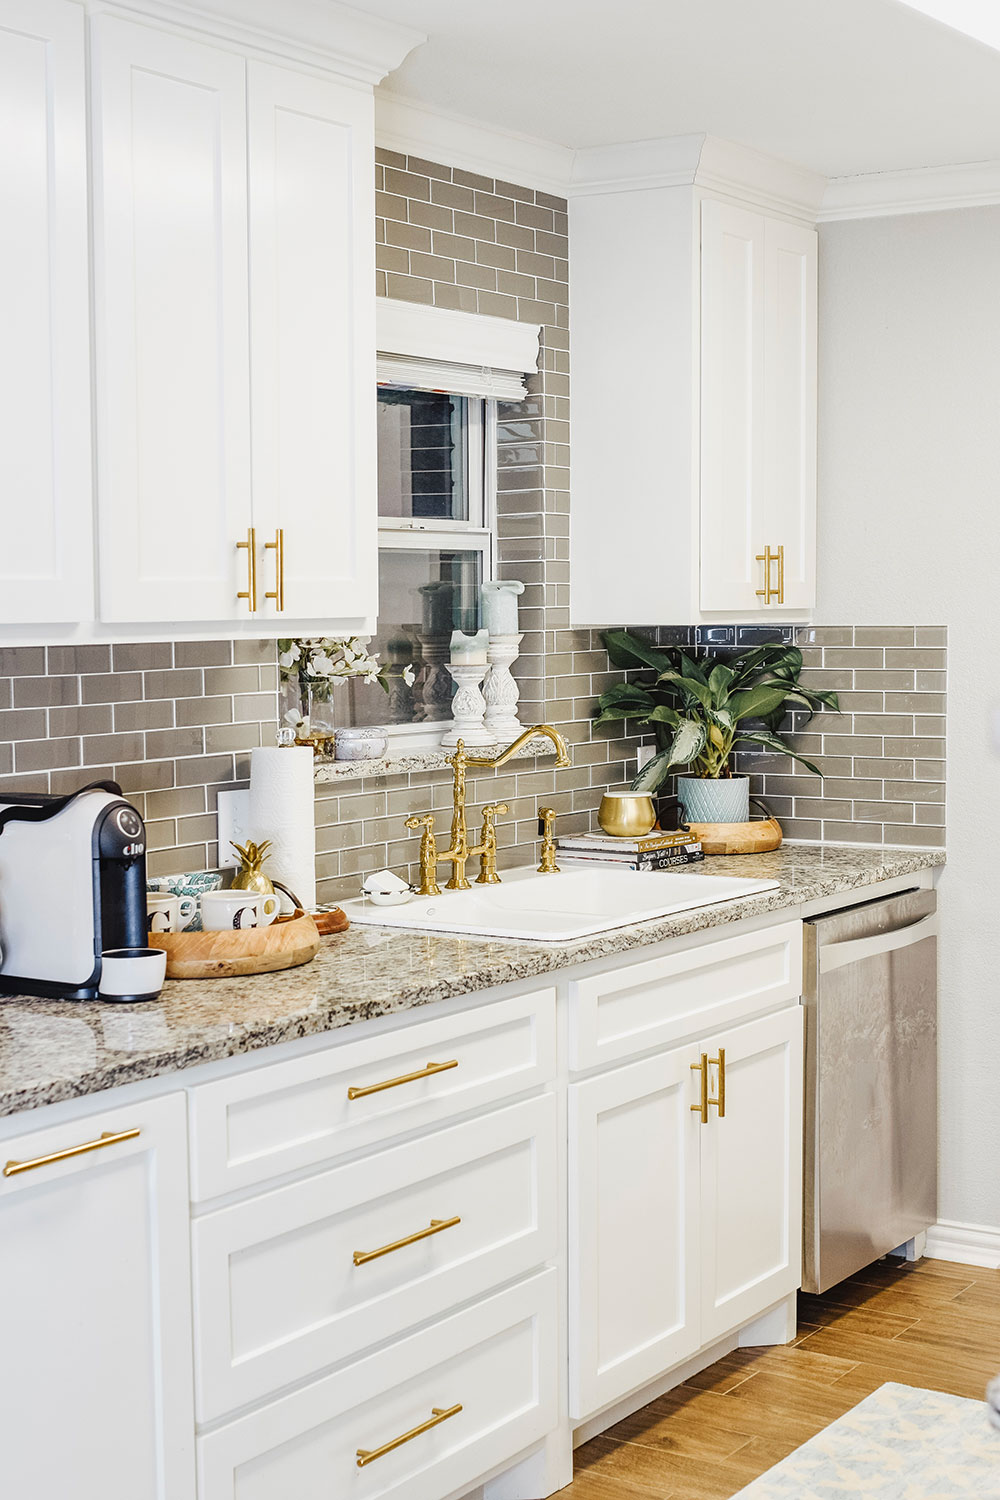 Our Kitchen Sink Woes + Our Small Kitchen Reveal | Vandi Fair on Kitchen Sink Ideas  id=72066